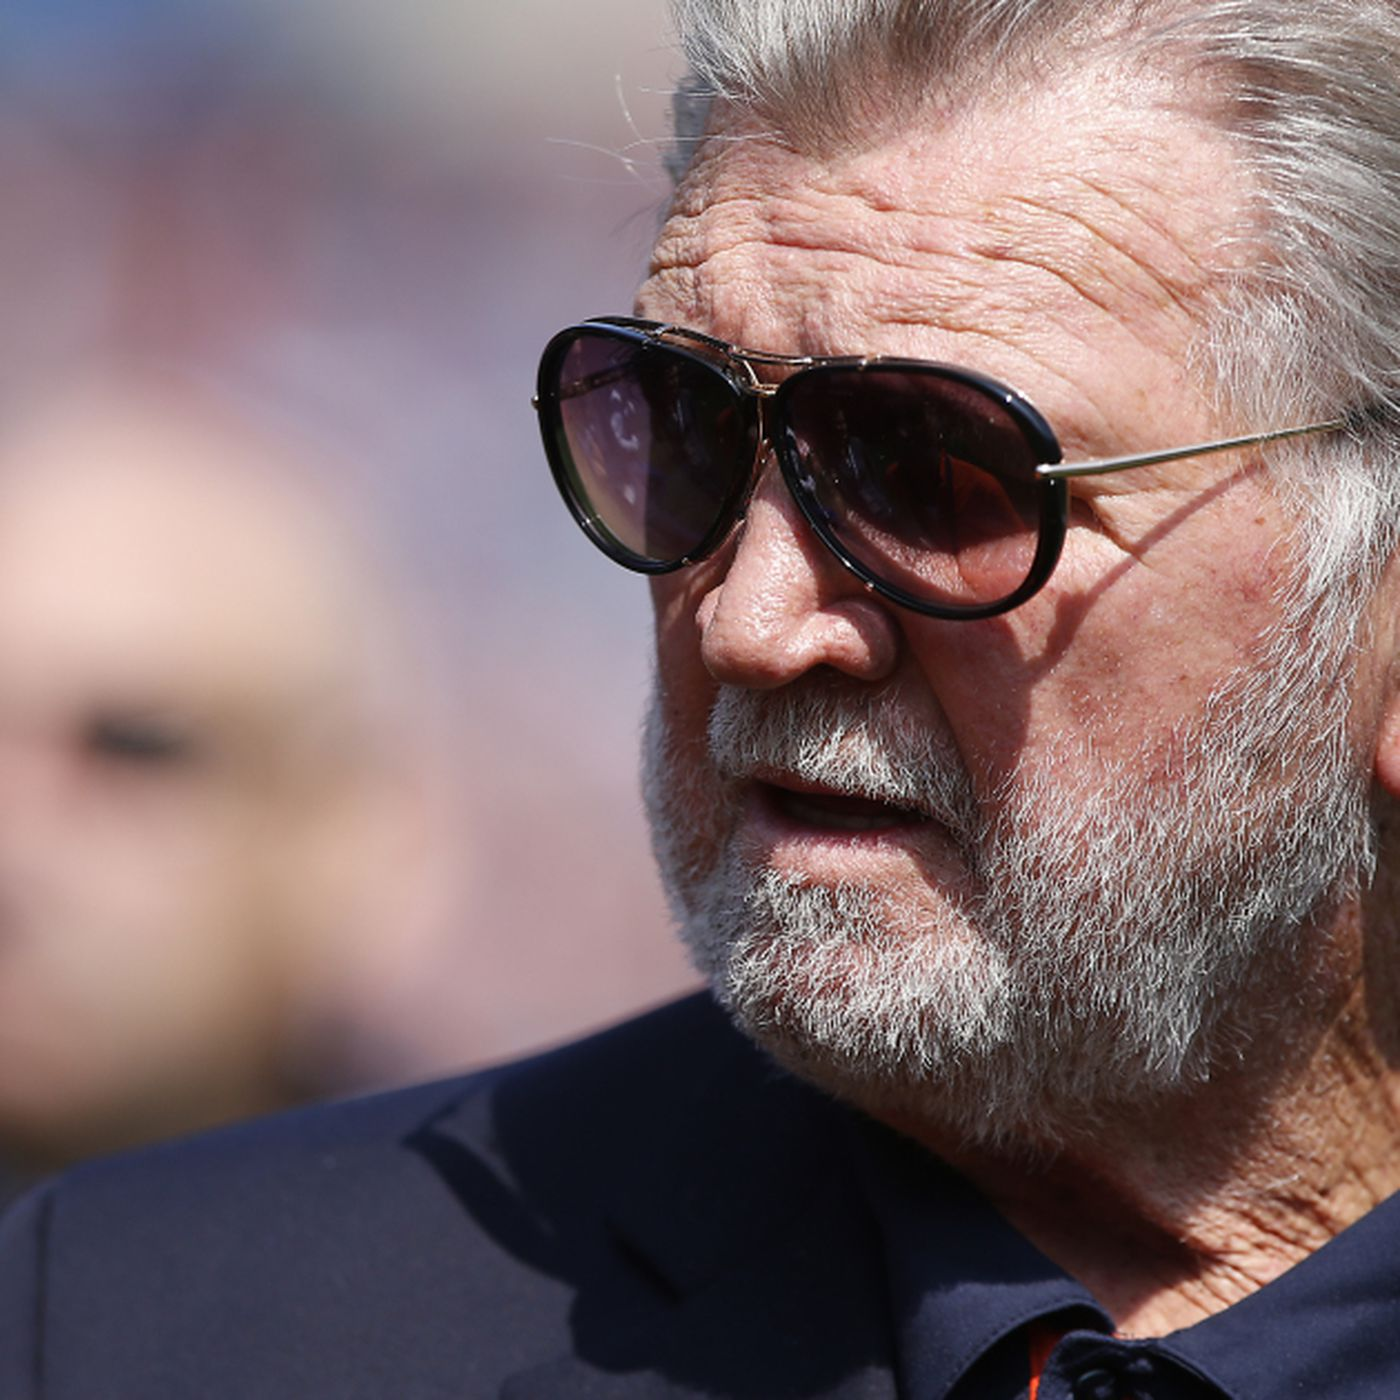 5eff0c76783 Mike Ditka says recent heart attack 'kicked my a– pretty good': Report